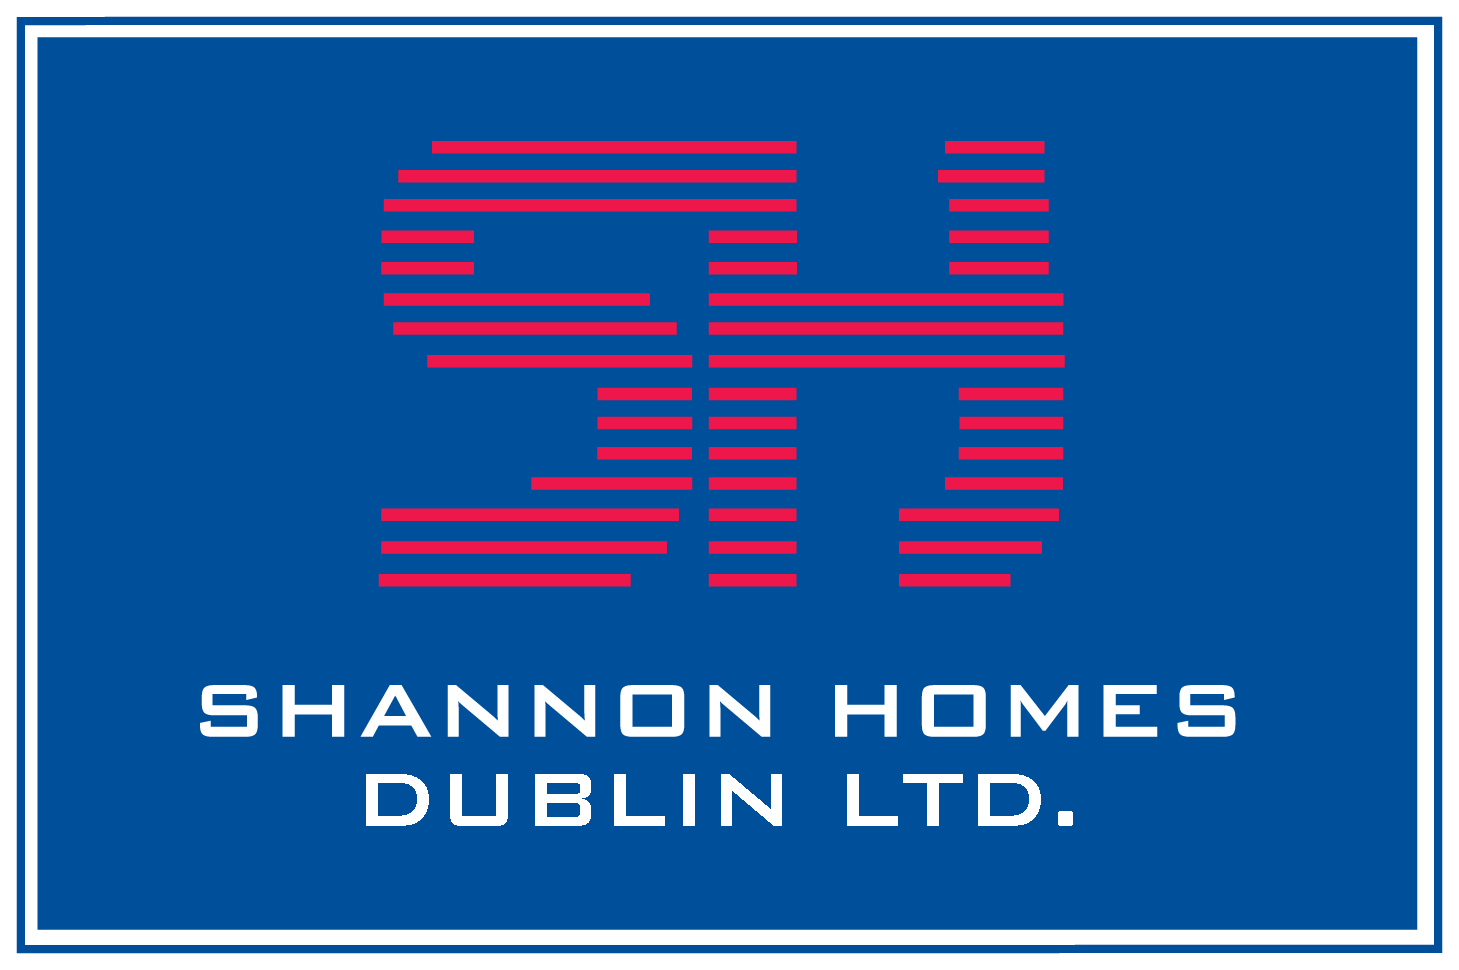 Shannon Homes